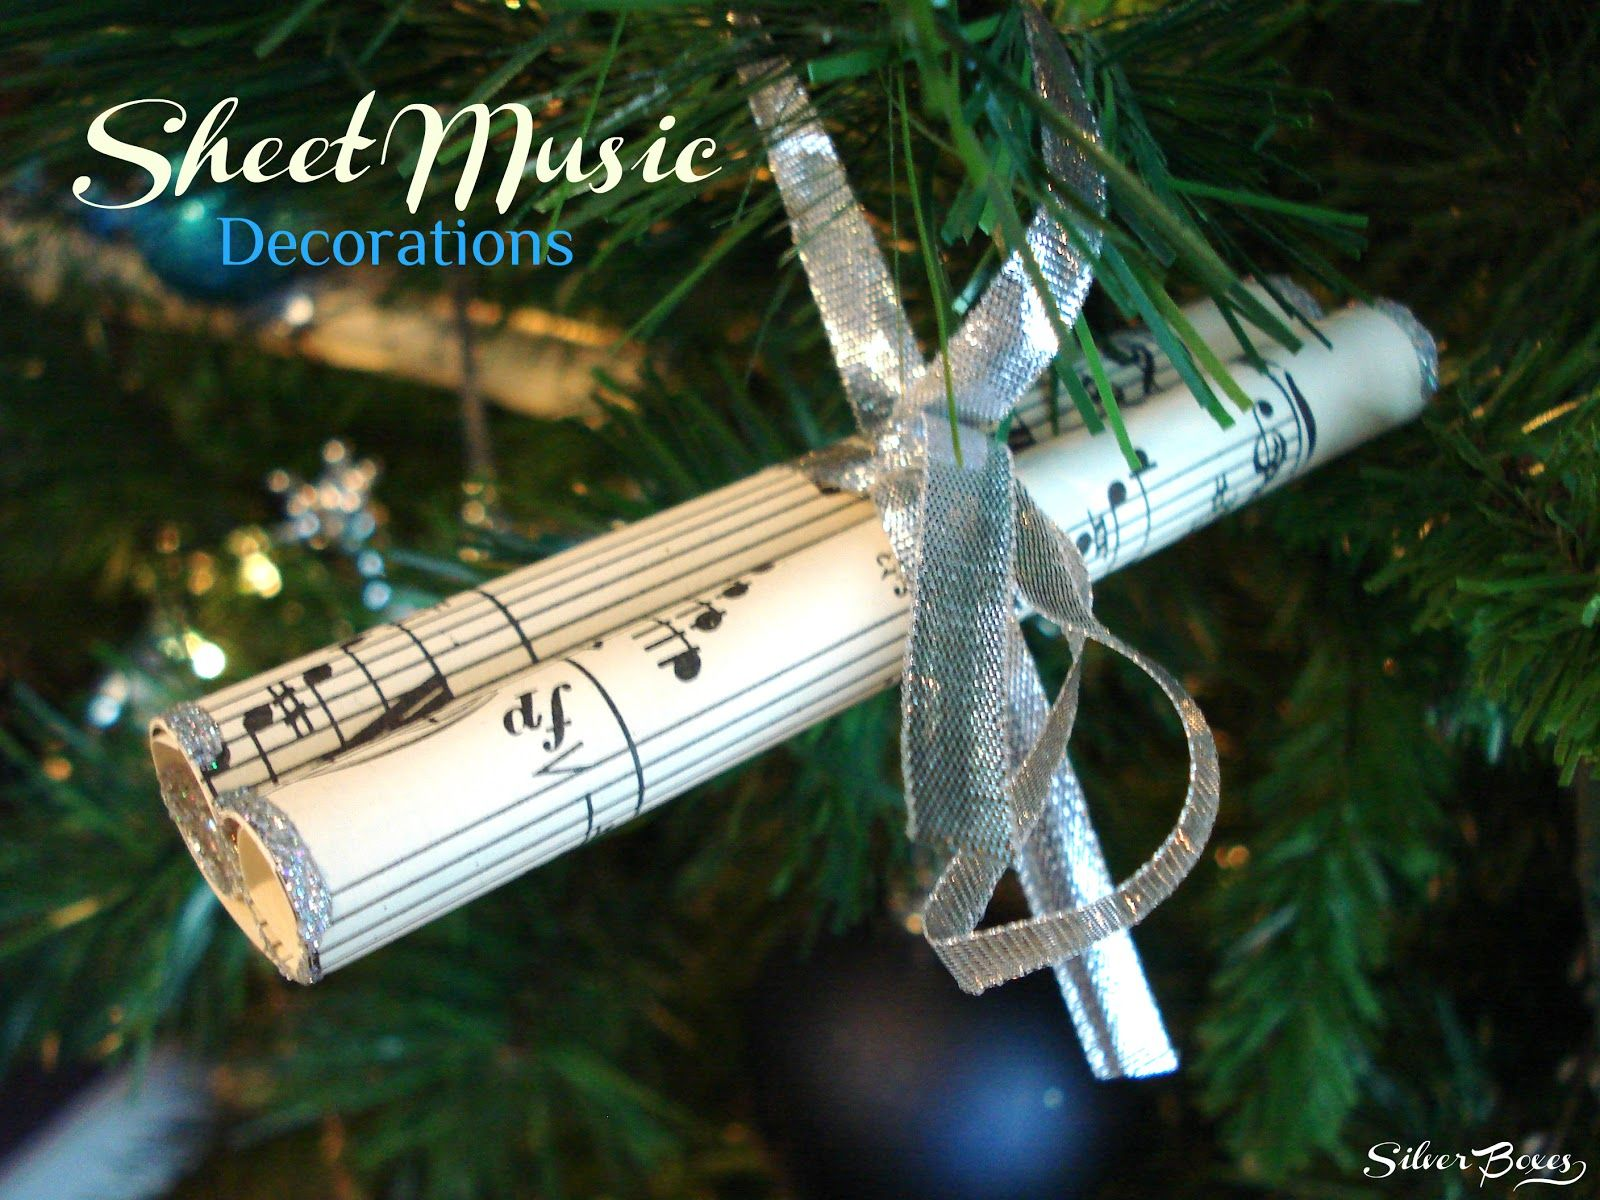 Christmas music ornaments - Sheet Music Decorations For My Fellow Musician Friends